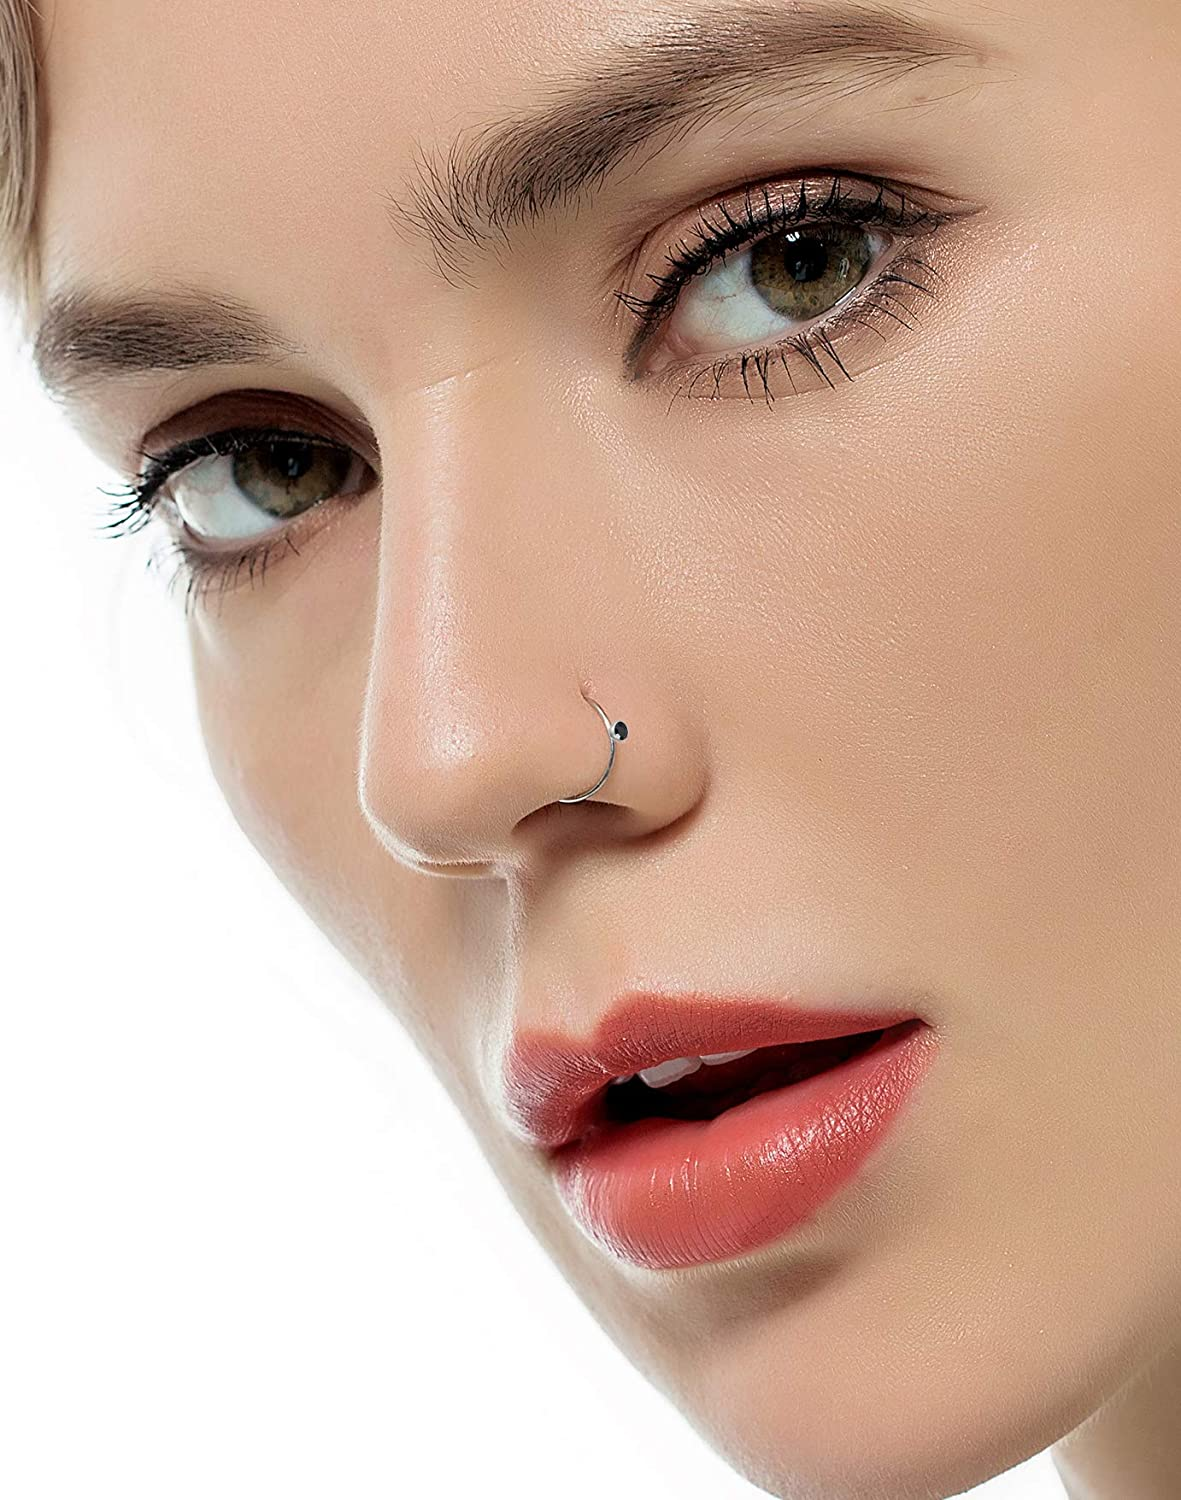 Tornito 100Pcs Stainless Steel Bone Nose Studs Hoop Nose Rings Set Multicolor Cubic Zirconia Hoop Tragus Cartilage Nose Ring Labret Nose Piercing Pin Jewelry for Women Men 1.5mm 2mm 2.5mm 20G 22G